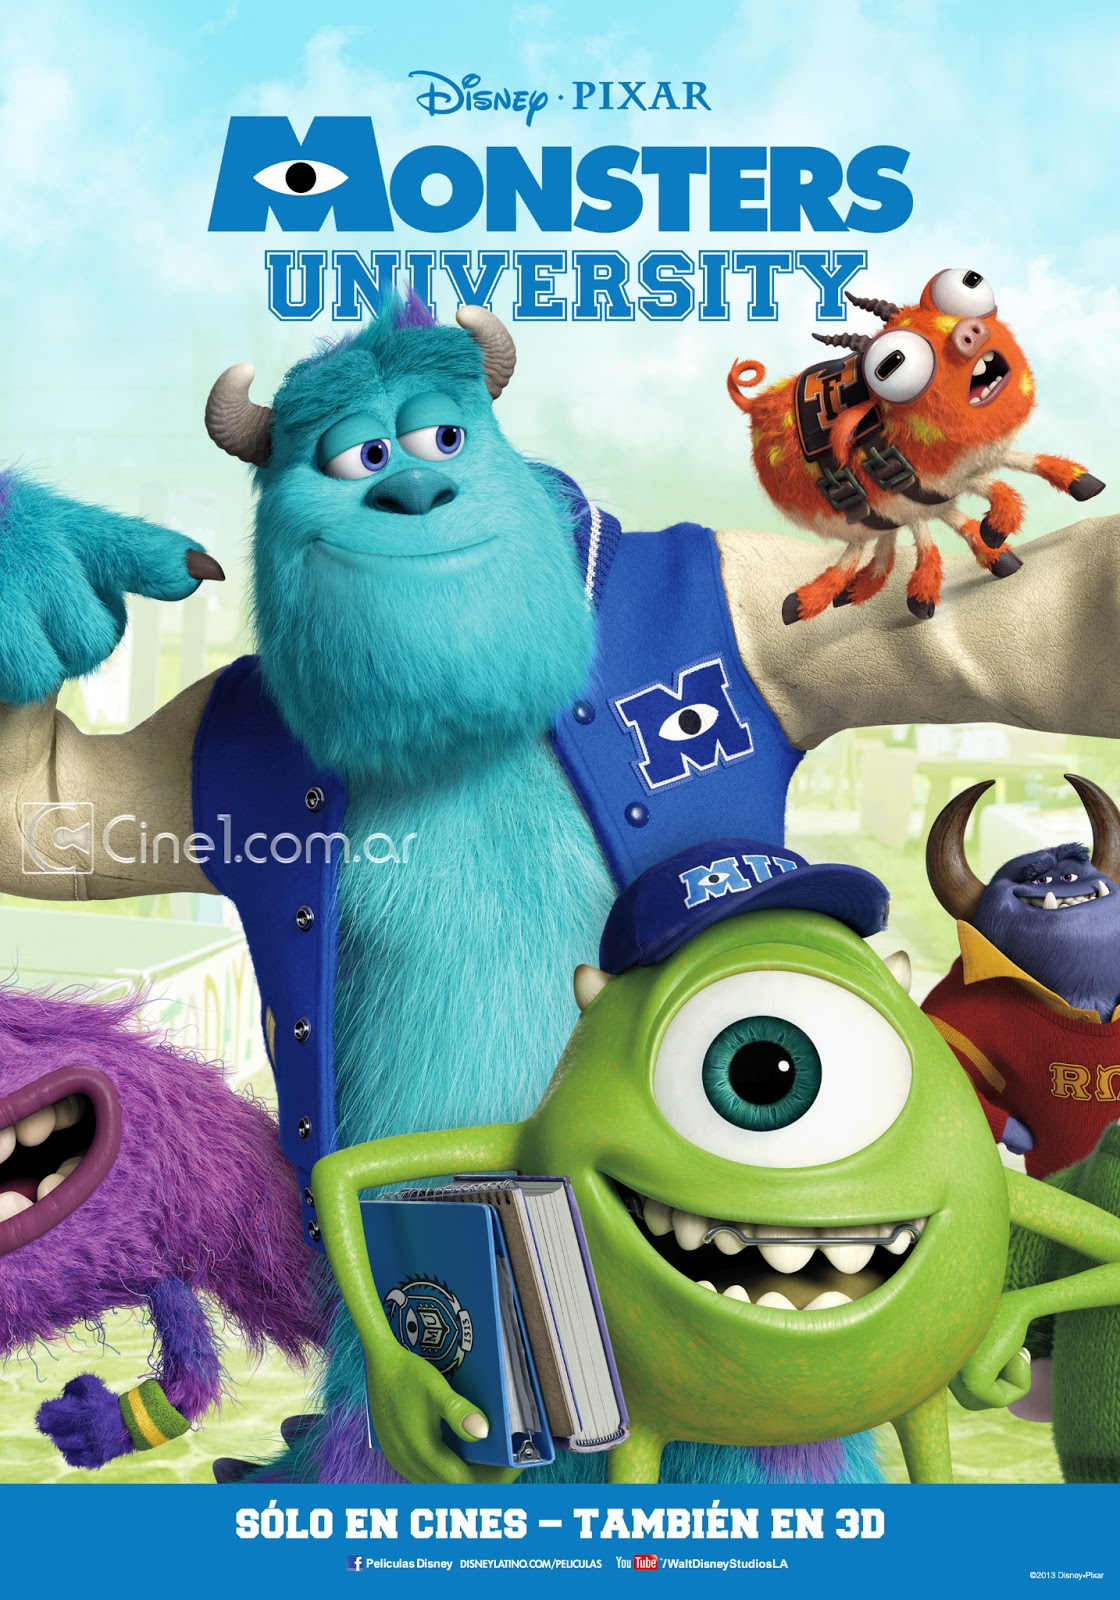 Image - Monsters University Poster Ex b Cine 1.jpg | Pixar ...